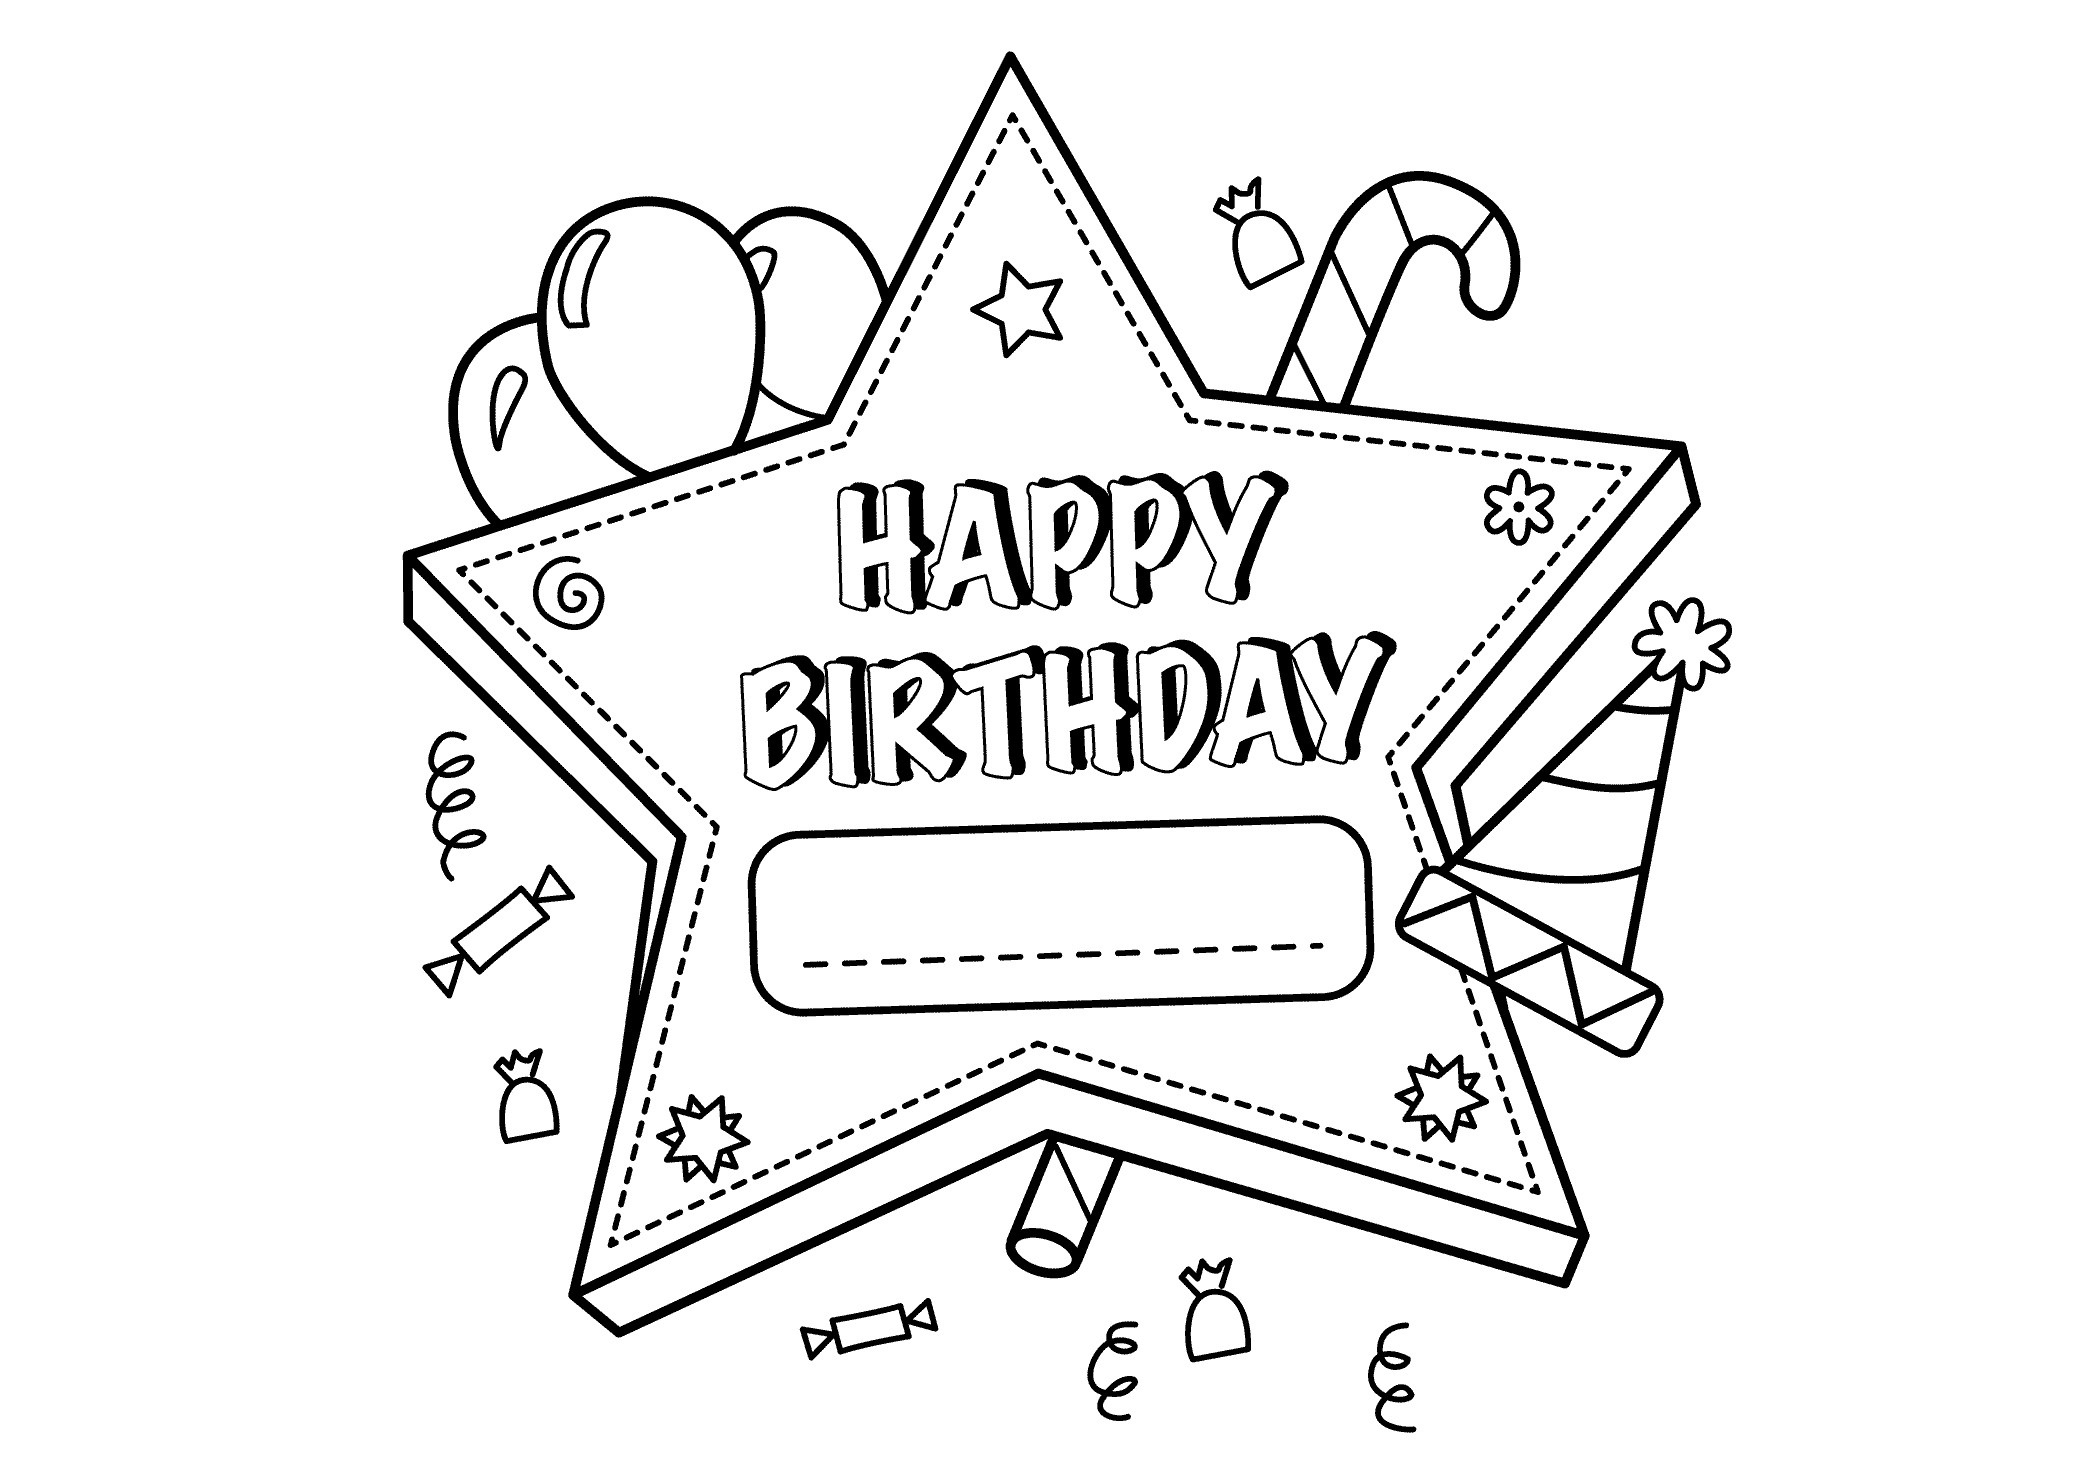 personalized happy birthday coloring pages ; personalized-happy-birthday-coloring-pages-16-d-happy-birthday-coloring-pages-for-boys